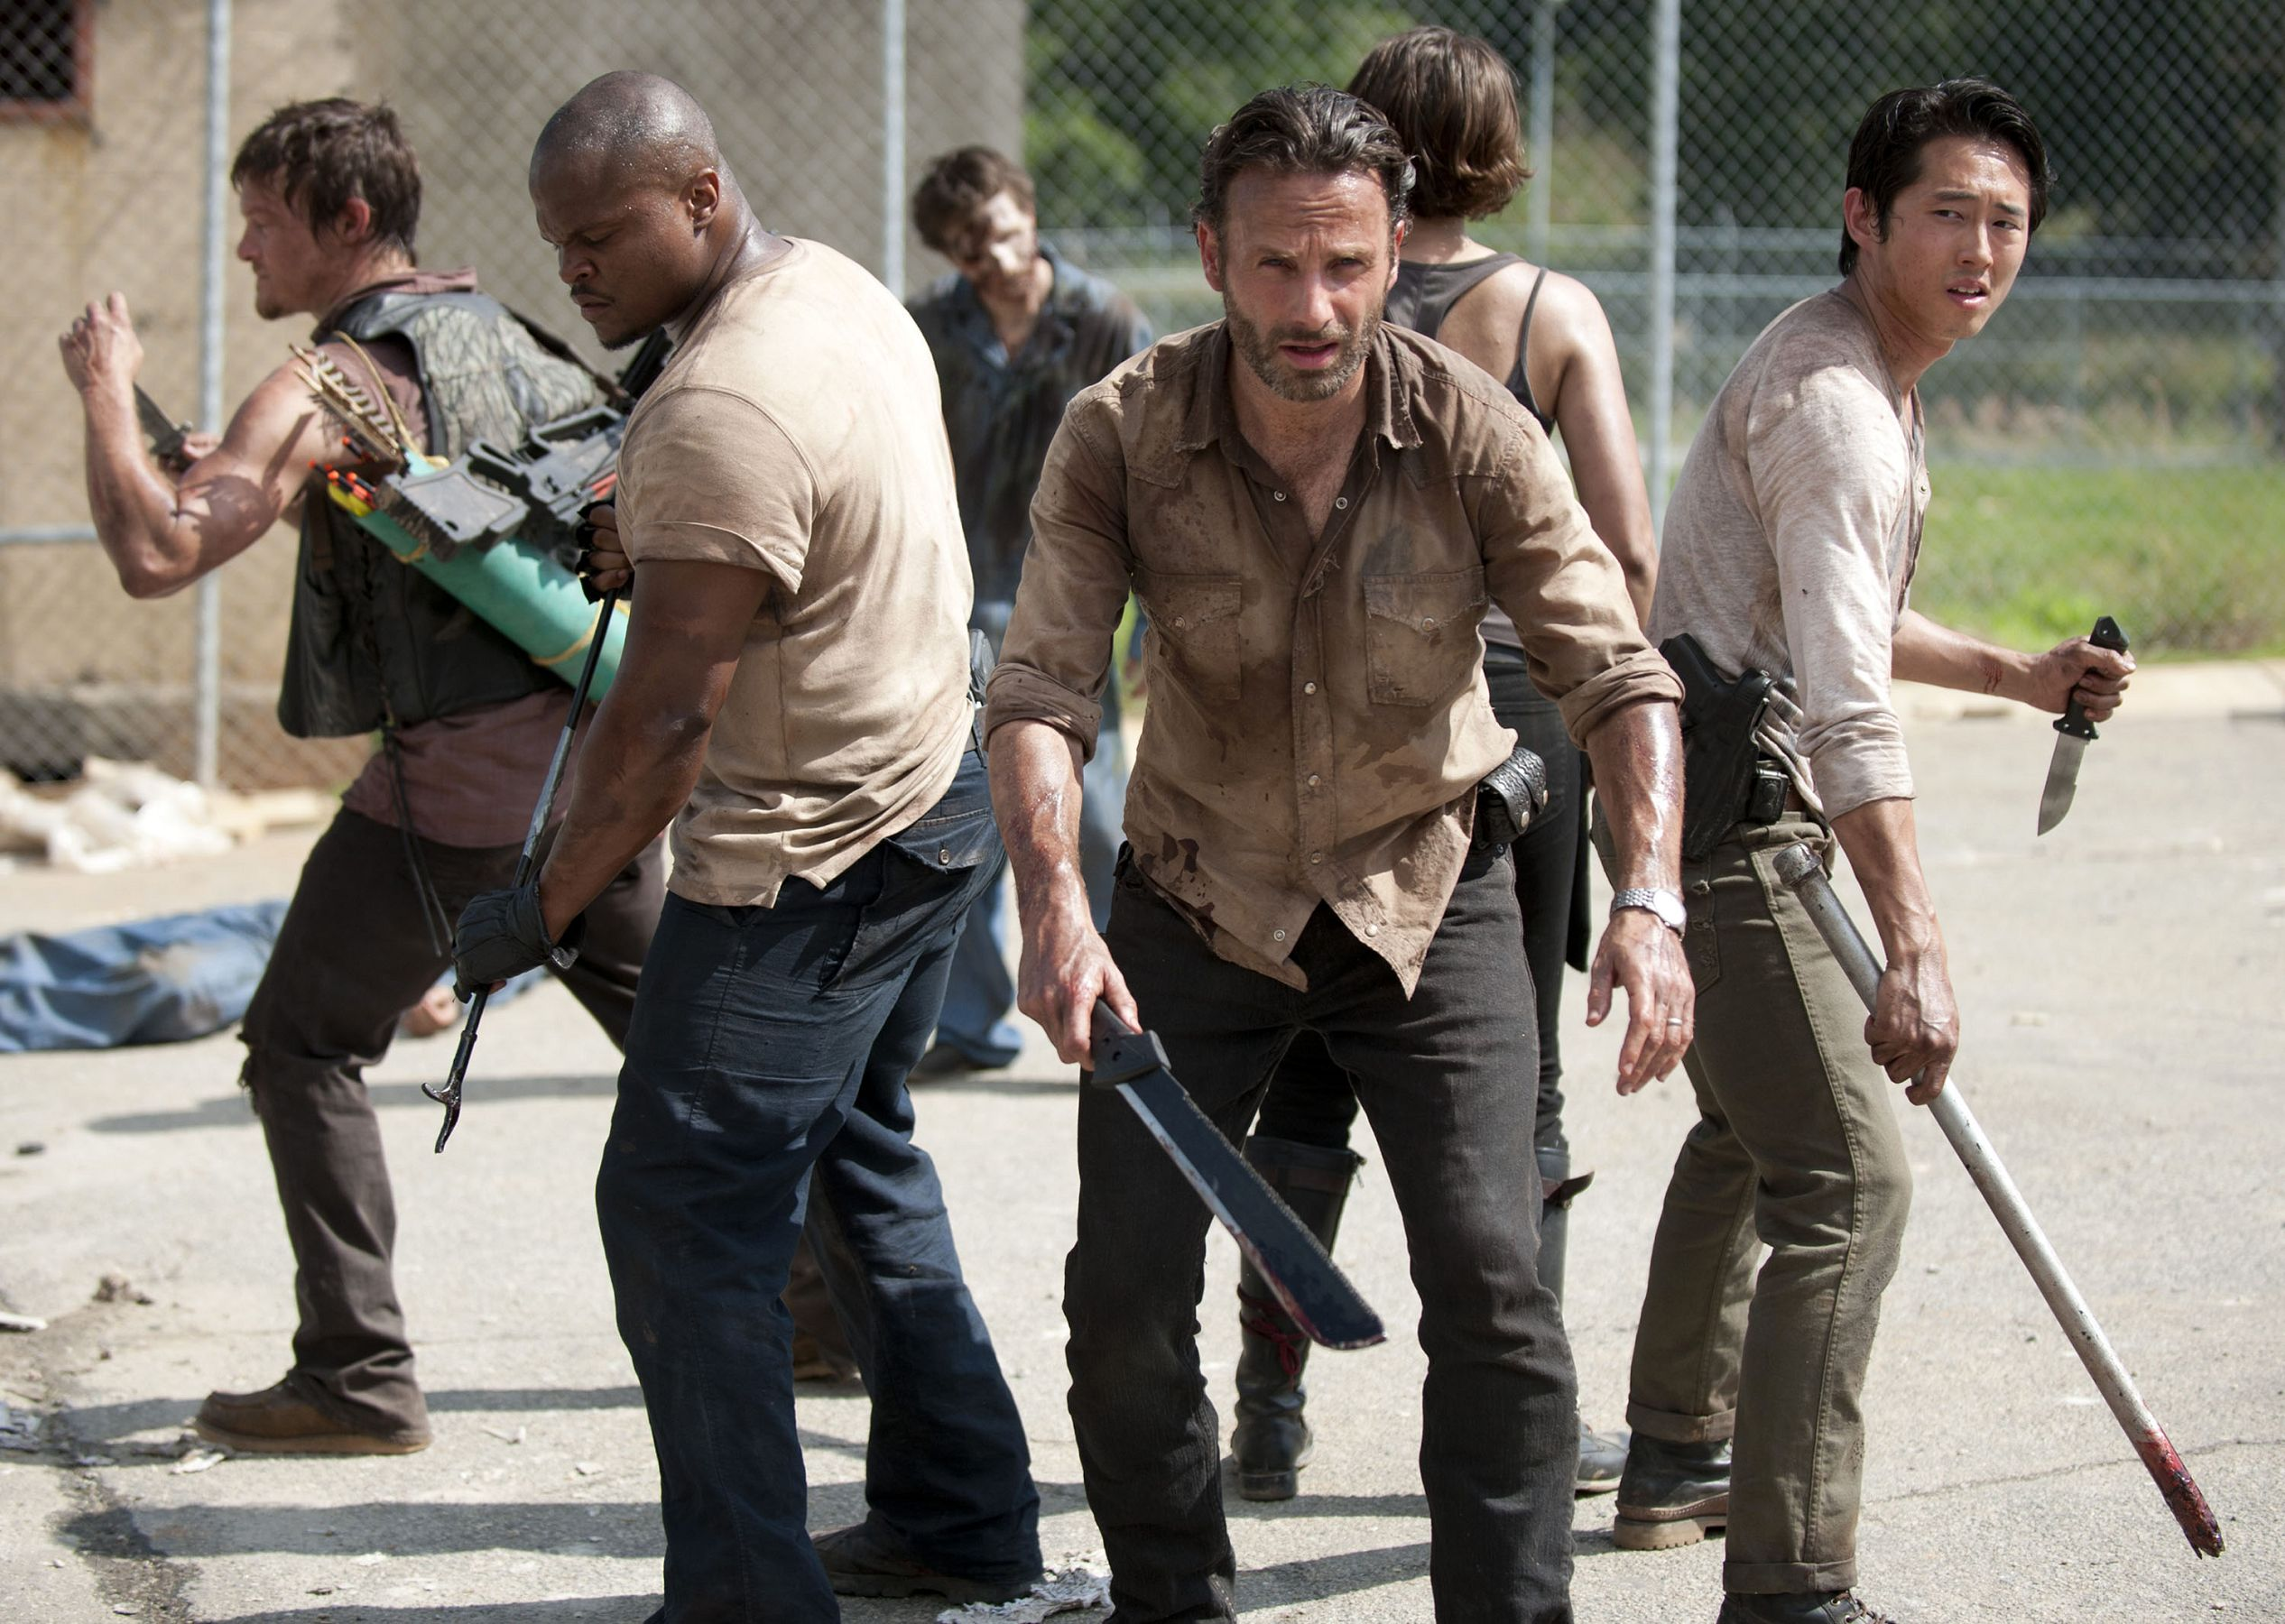 Facts about 'The Walking Dead'